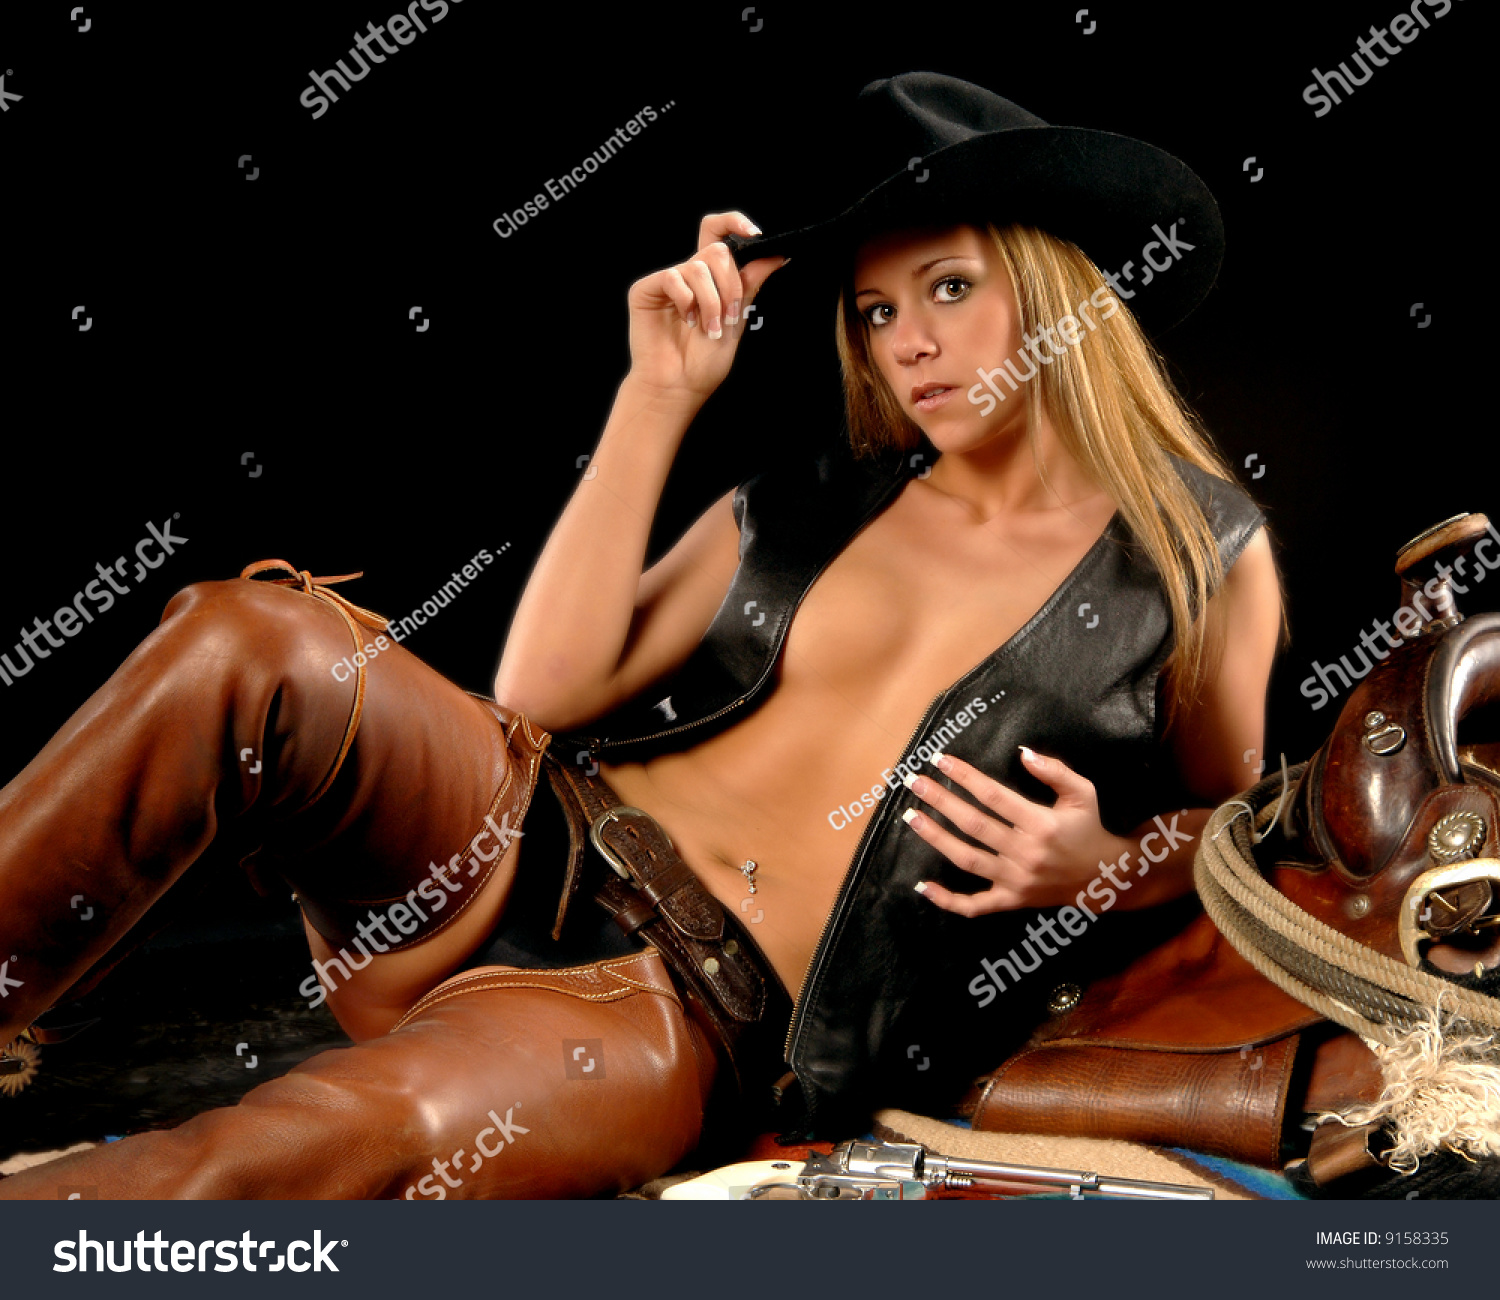 nude-cowgirl-pistol-nudy-photos-in-heden-camera